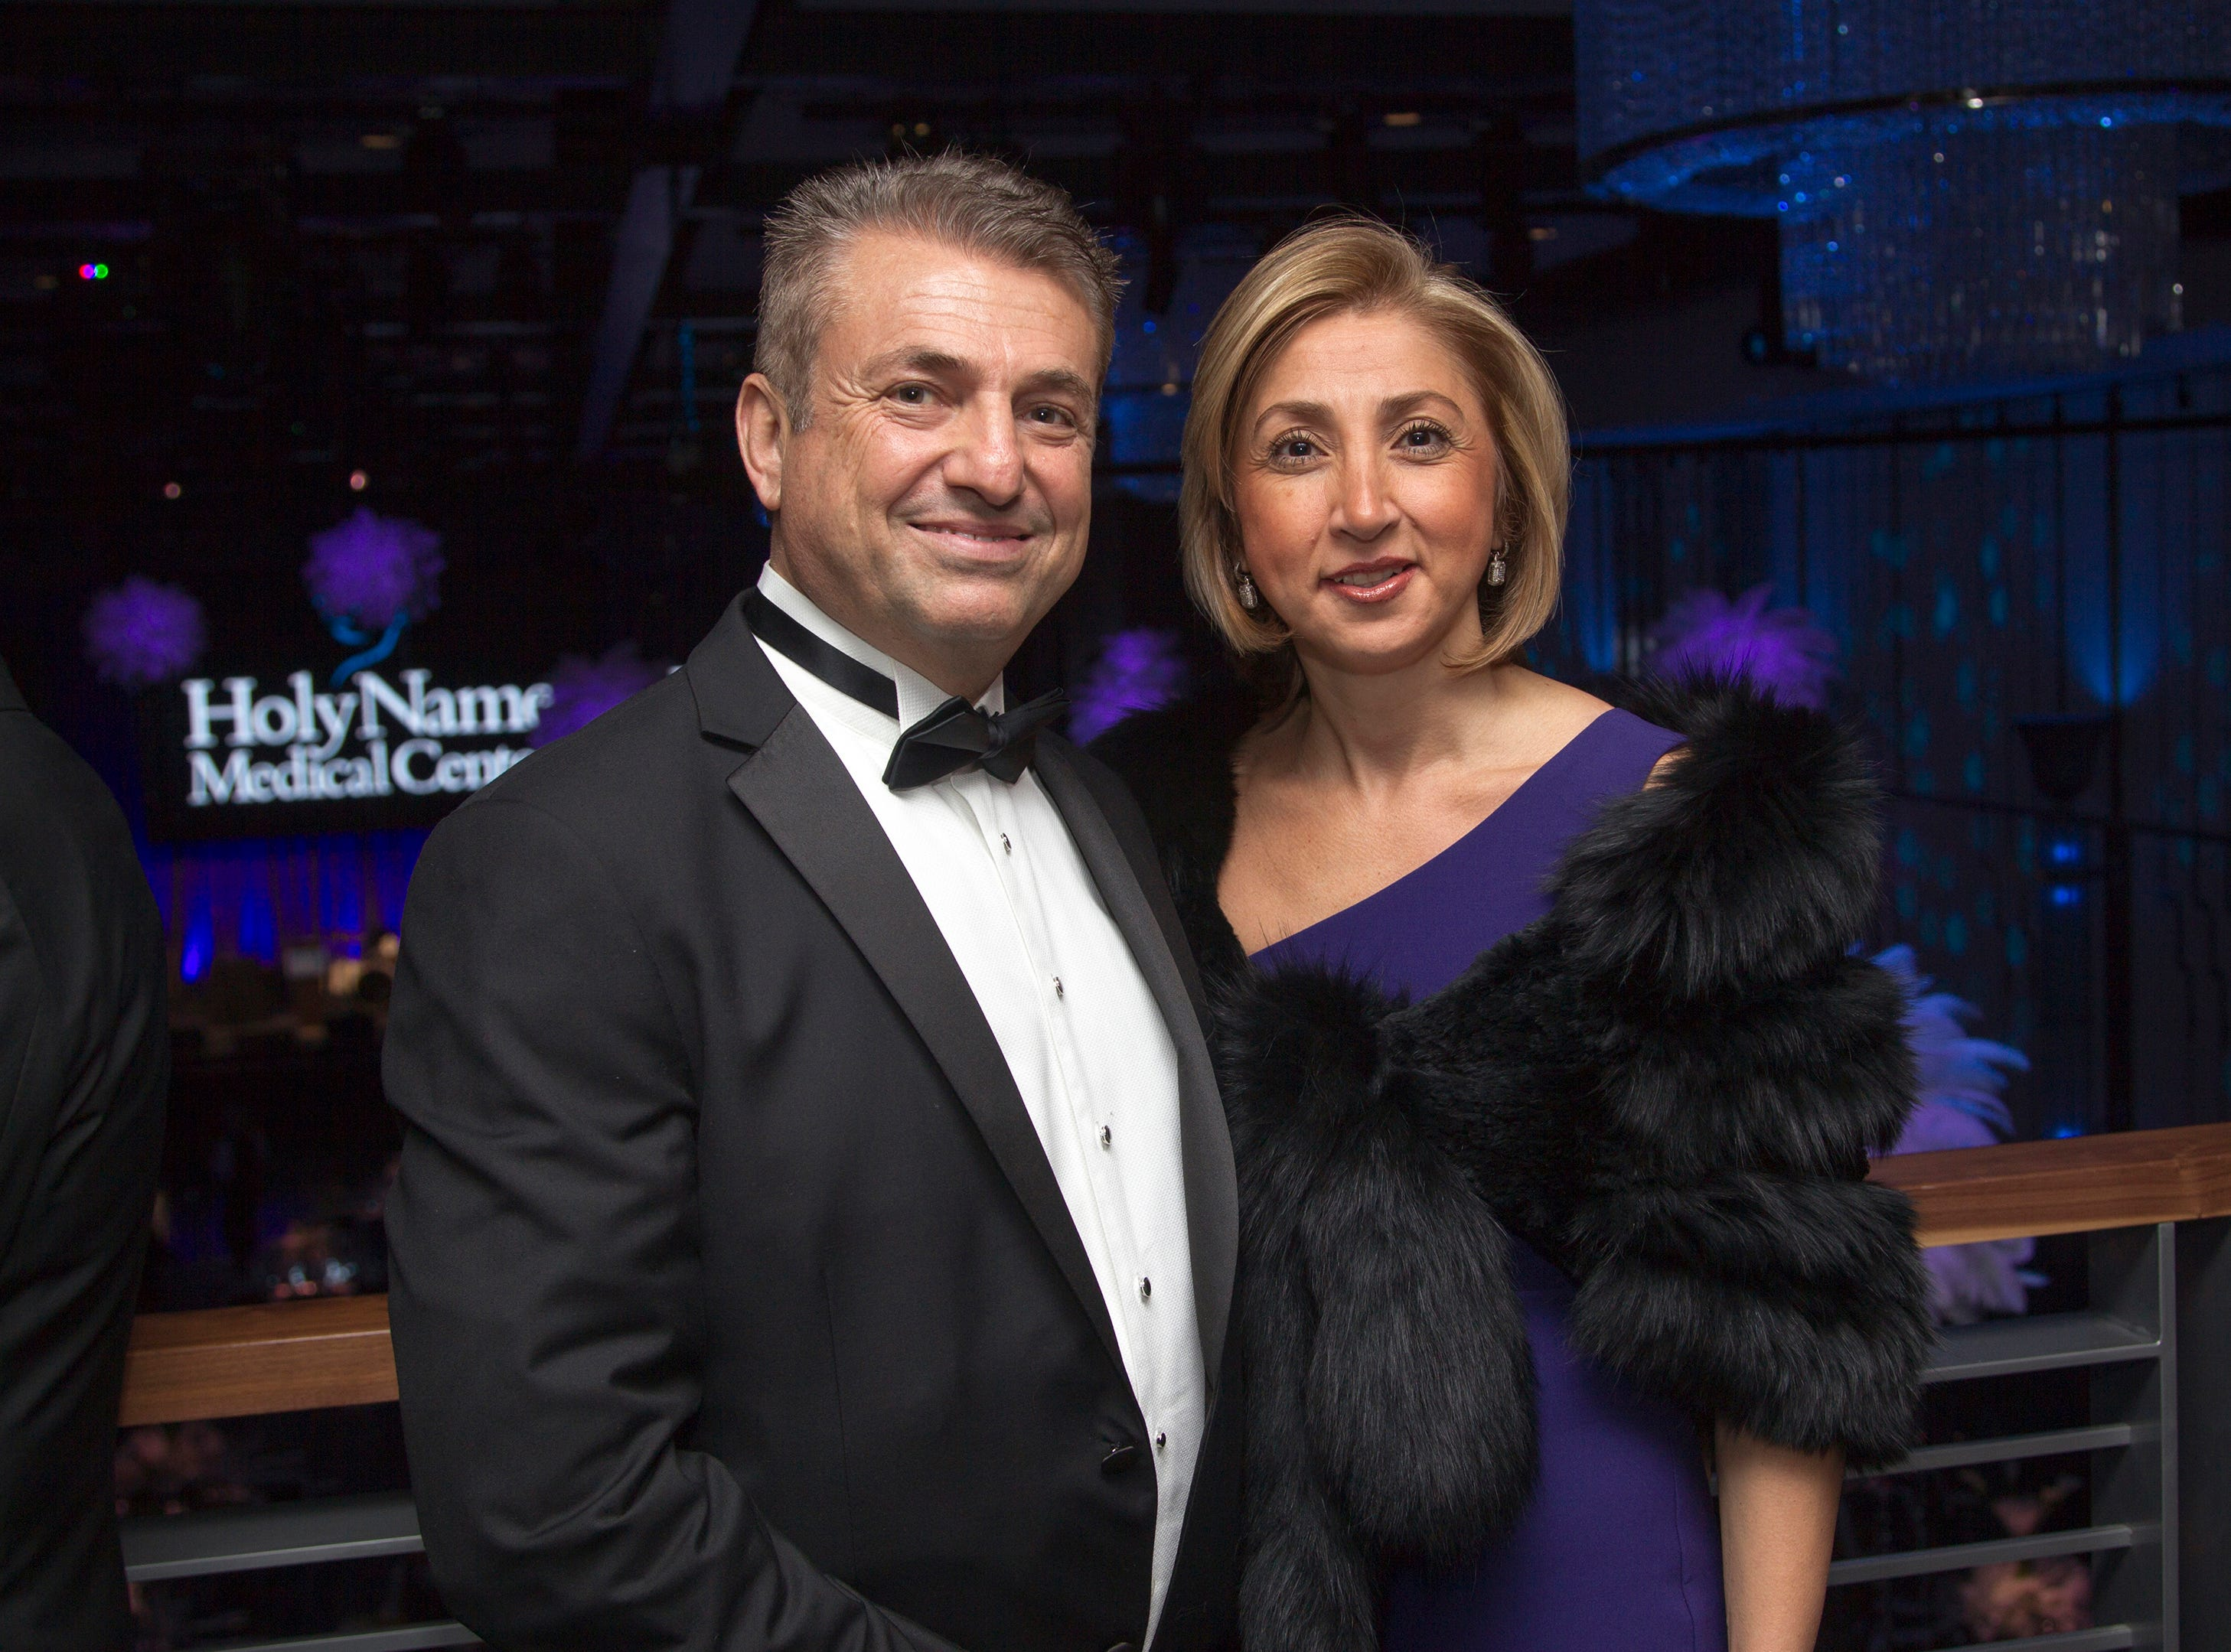 Leon and Ursula Temiz. Holy Name Medical Center held its 2018 Founders Ball in NYC at Ziegfeld Ballroom. 11/17/2018